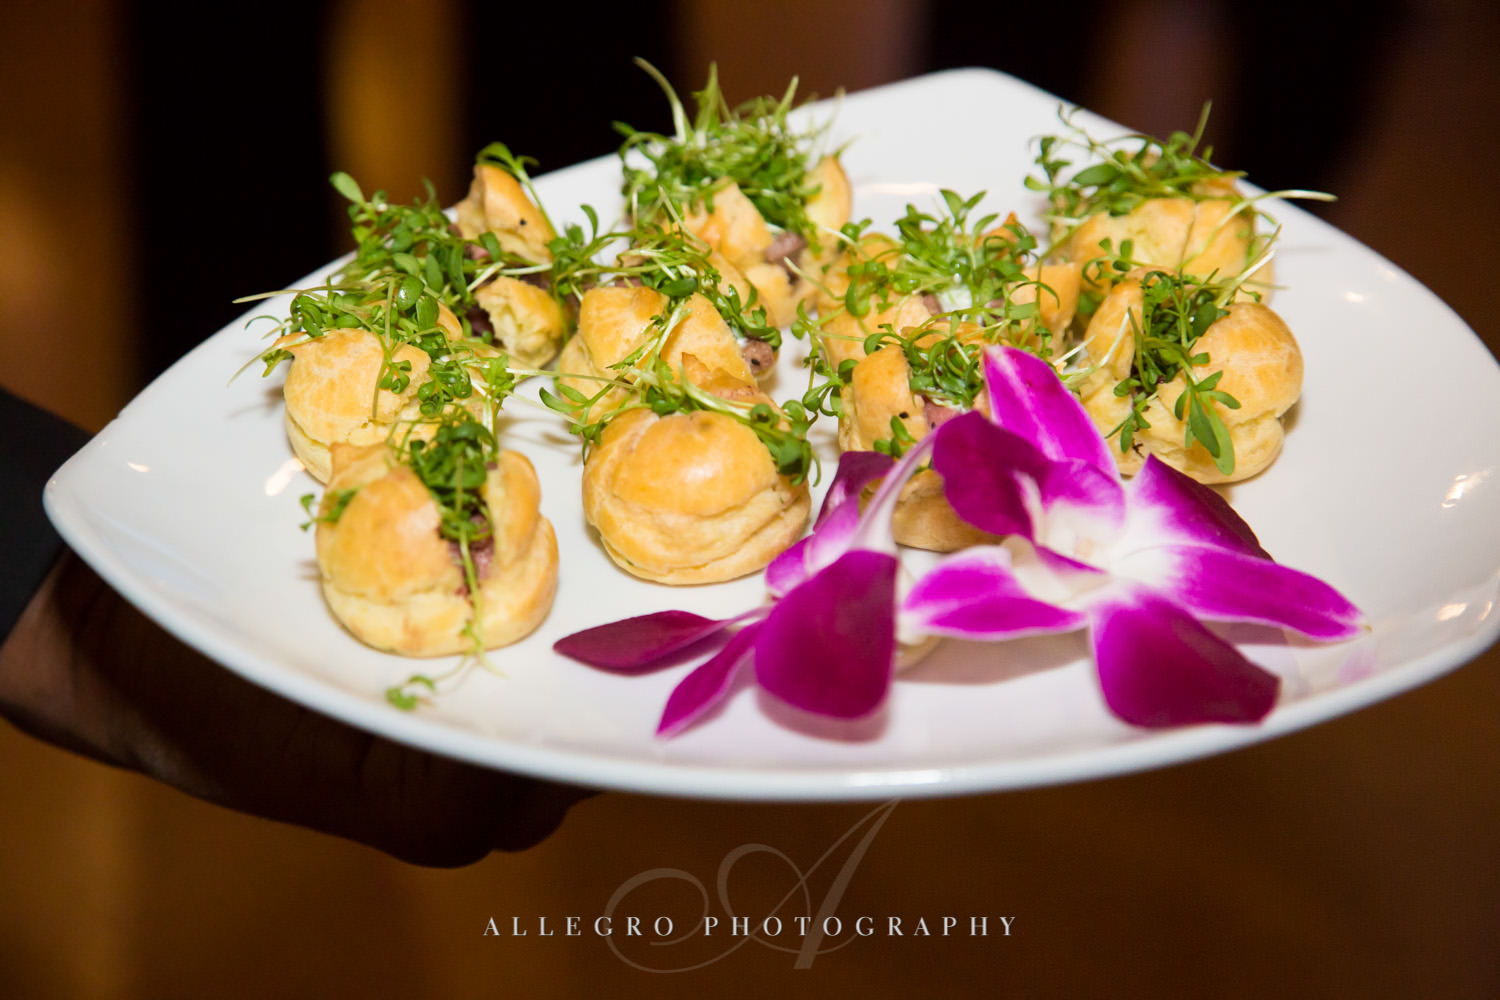 Horderves served at JCC@333 shot by Allegro Photography